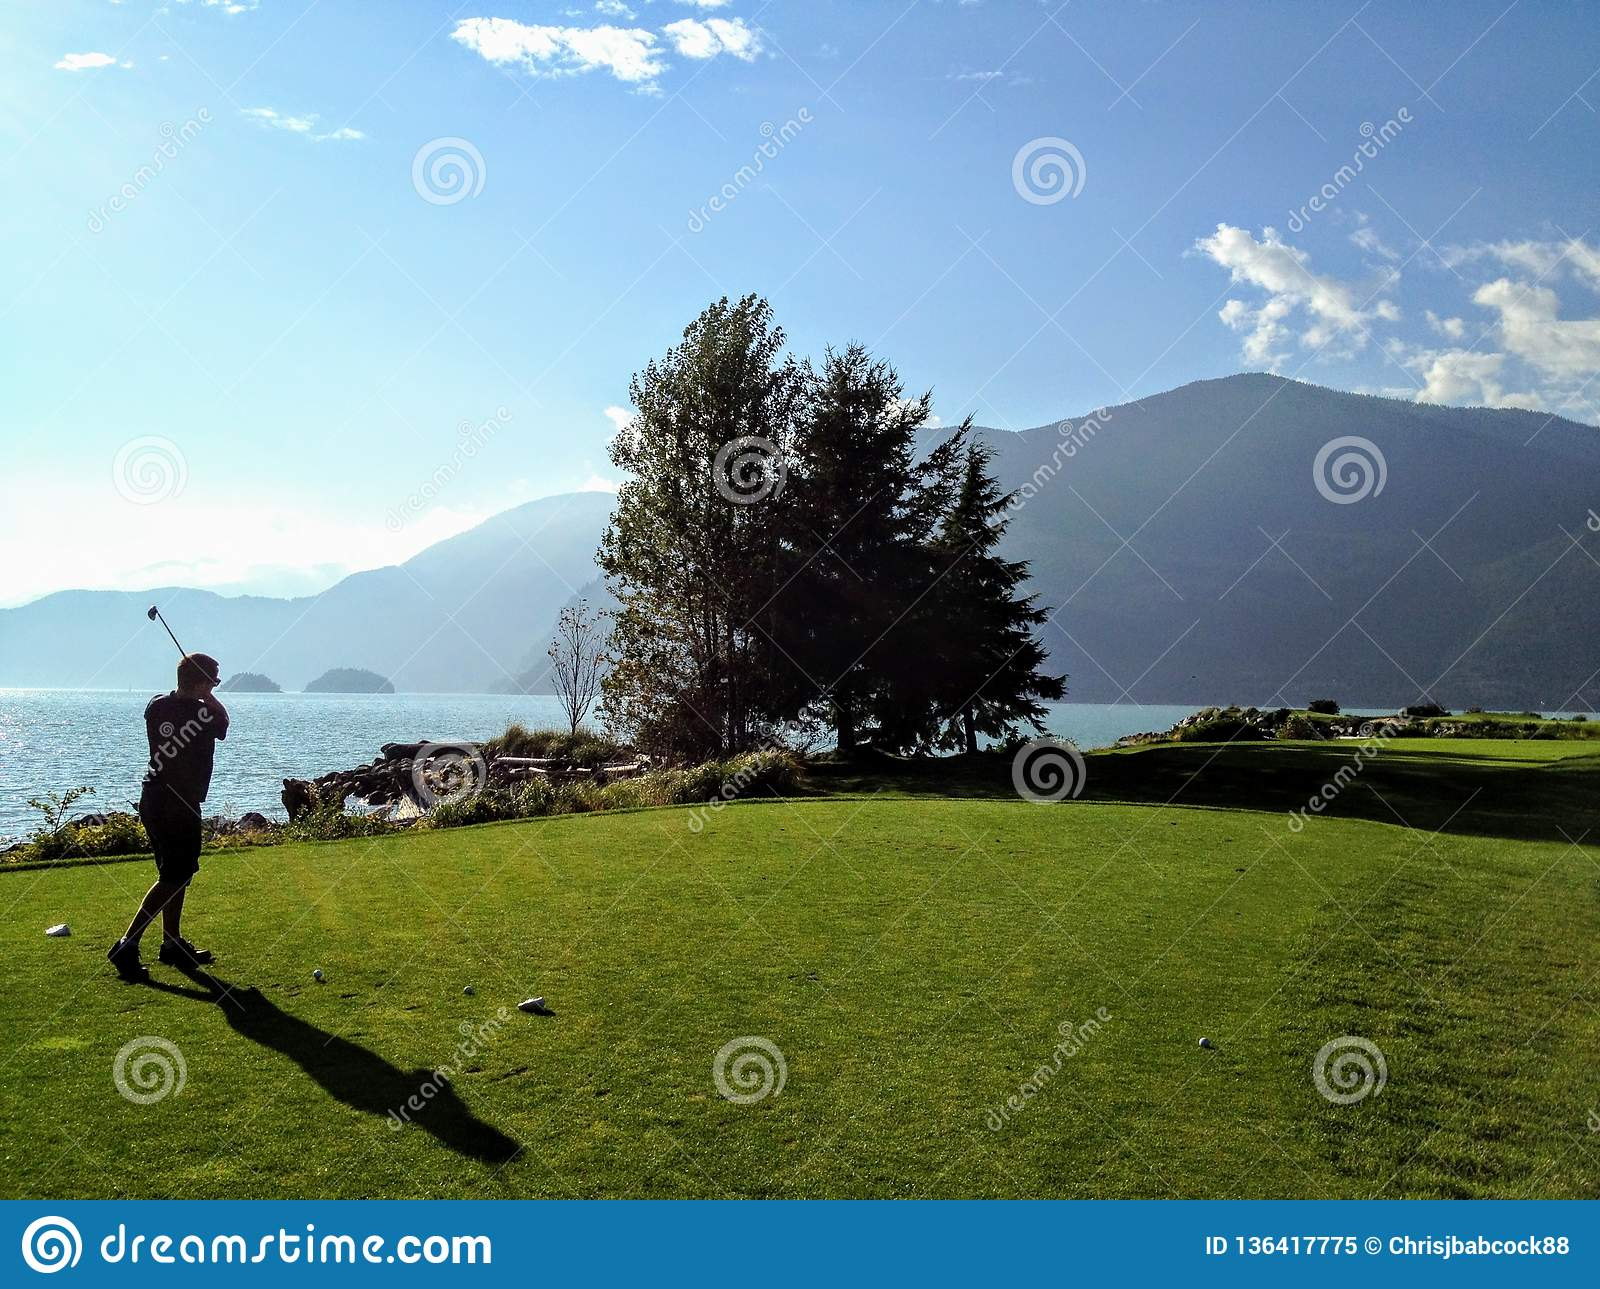 VA man playing golf along the ocean in howe sound, British Columbia, Canada. It is a beautiful sunny day.